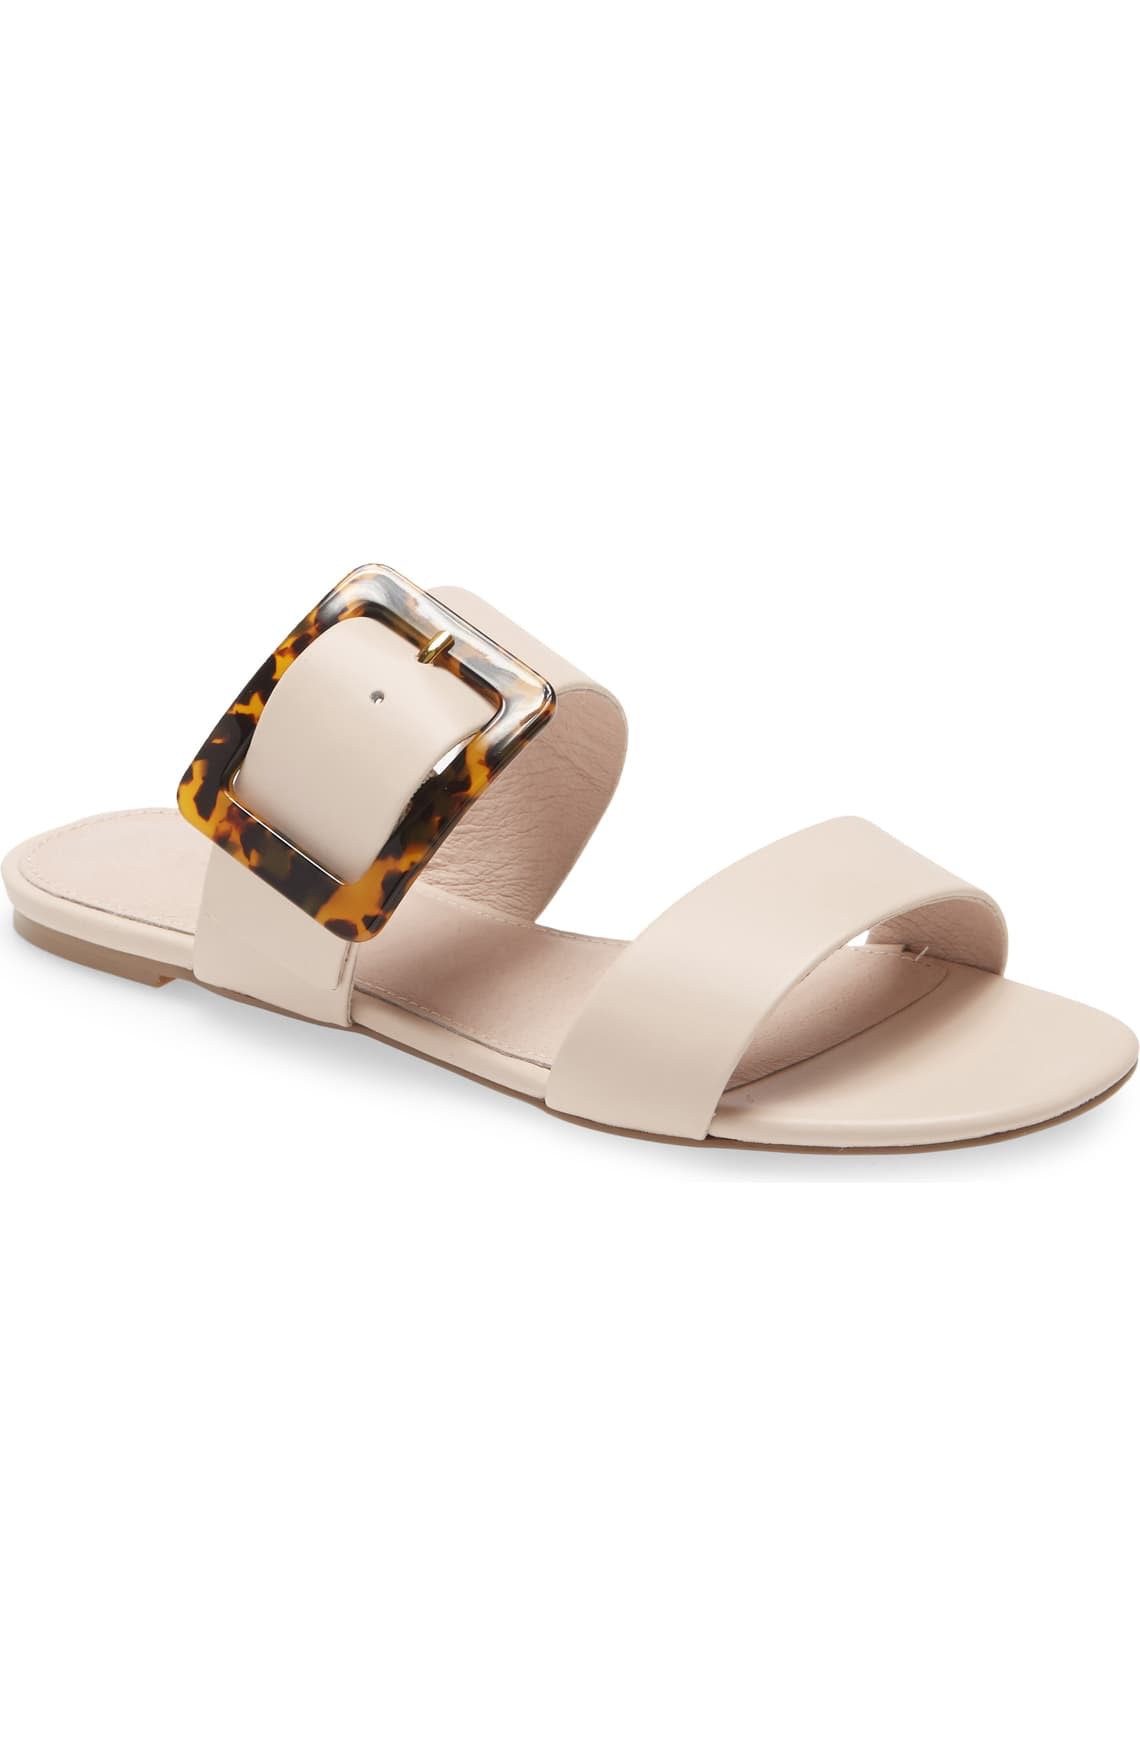 Bone Sandal w/ Buckle